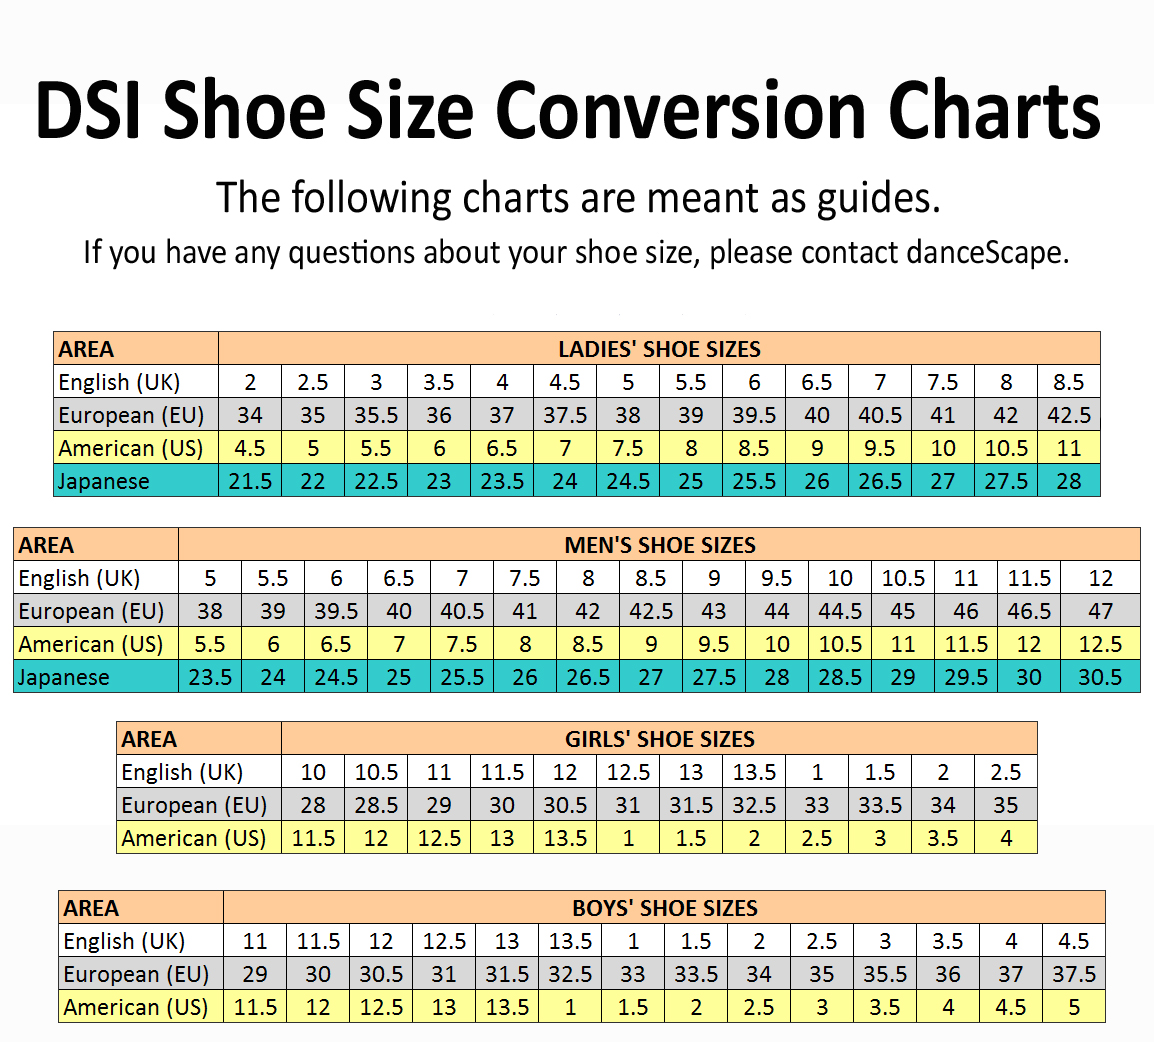 Childrens shoe size conversion chart gallery free any chart examples european shoe size chart conversion gallery free any chart examples gucci belt size 80 conversion the geenschuldenfo Gallery